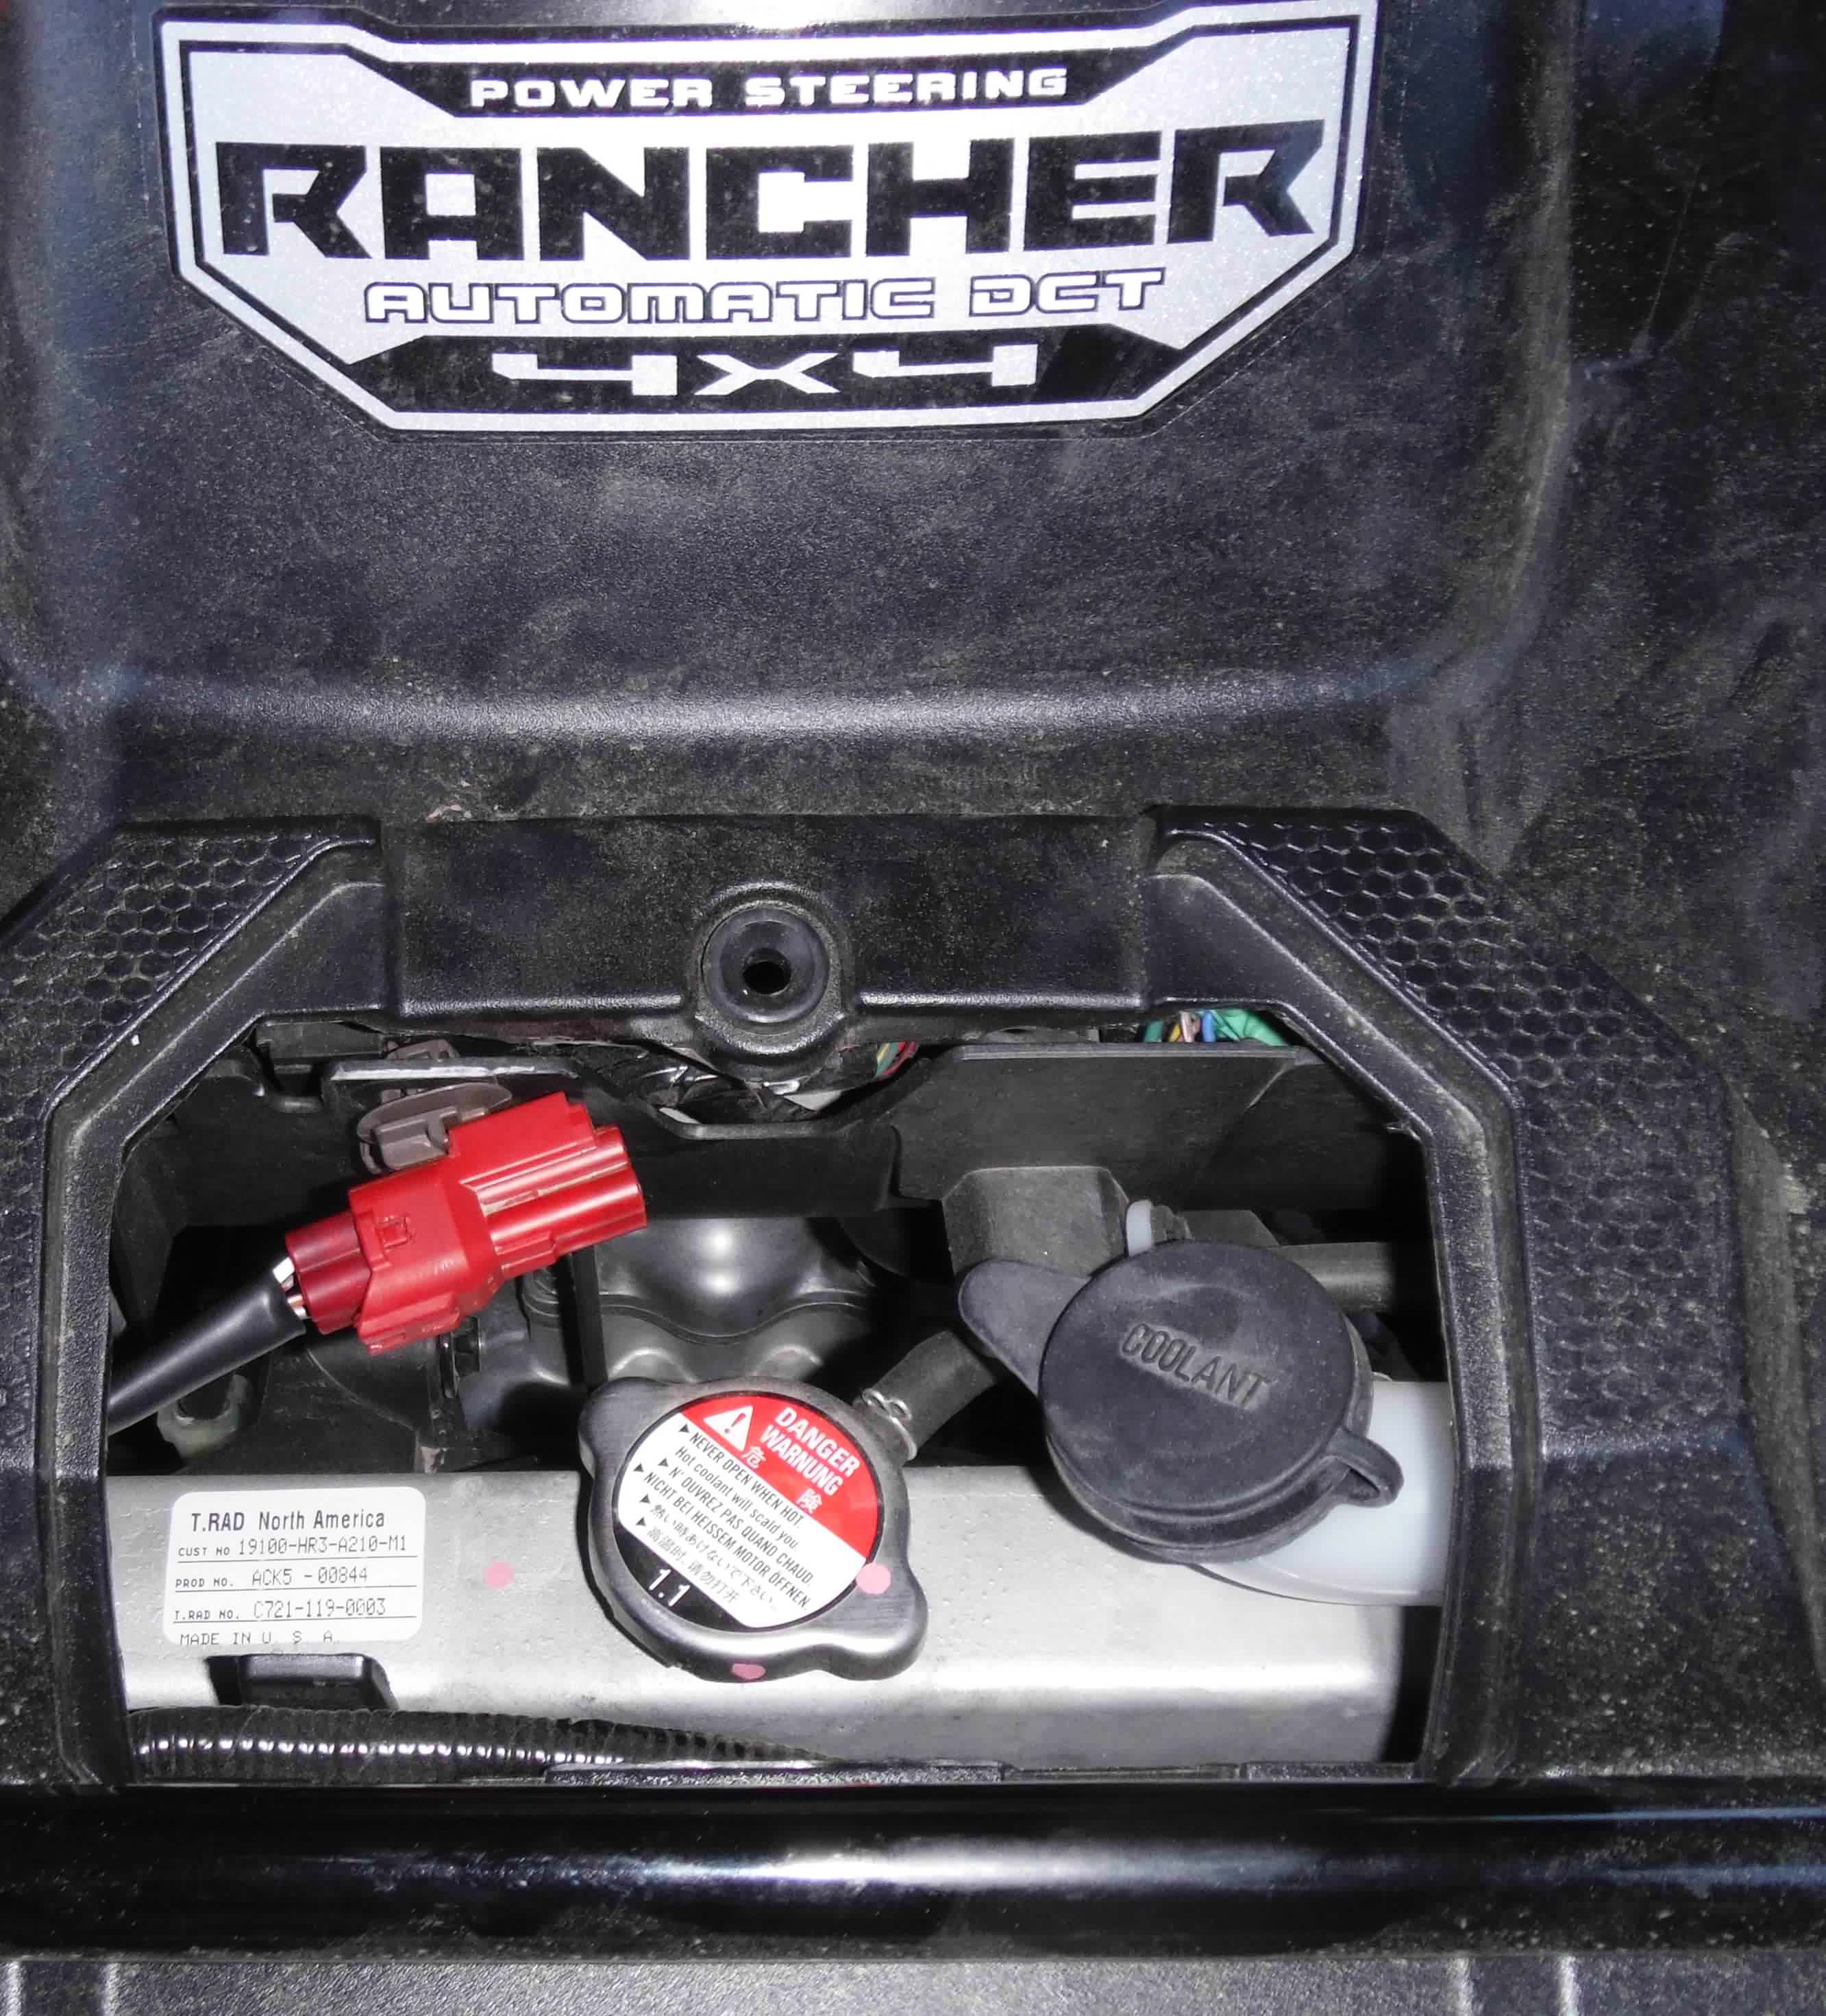 Wiring Harness For Honda Rancher : Rancher plug accessory questions honda atv forum